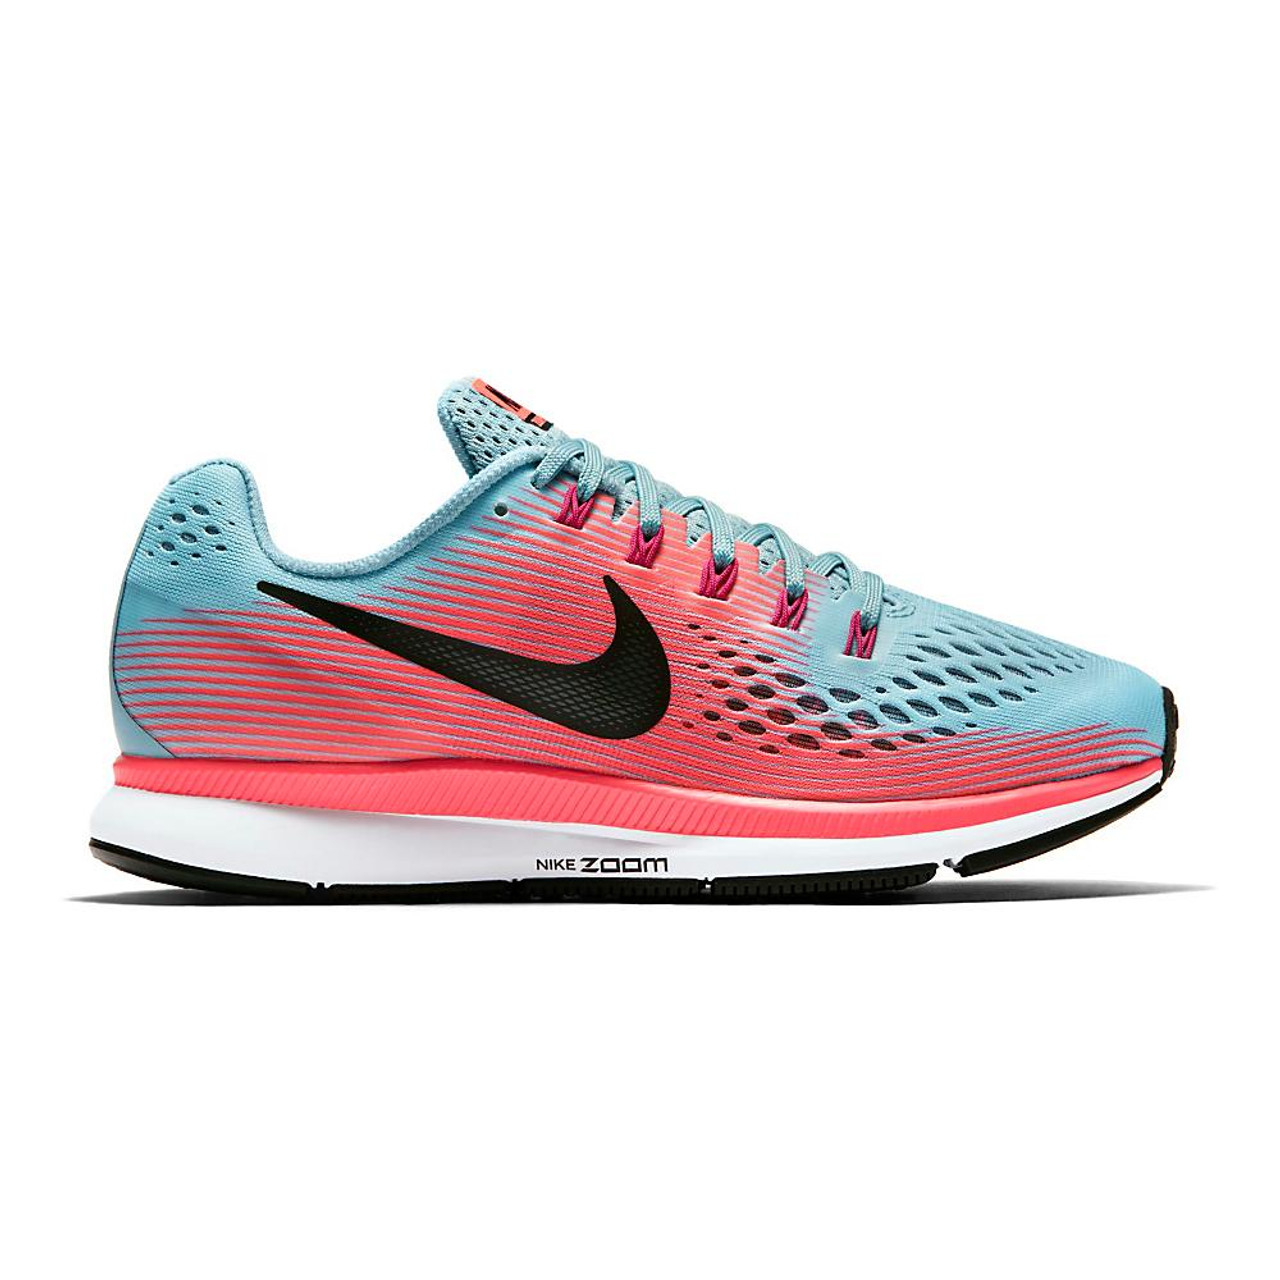 dinamico Fantasia Fame  Women's Nike Air Zoom Pegasus 34 Running Shoes | Free 3-Day Shipping